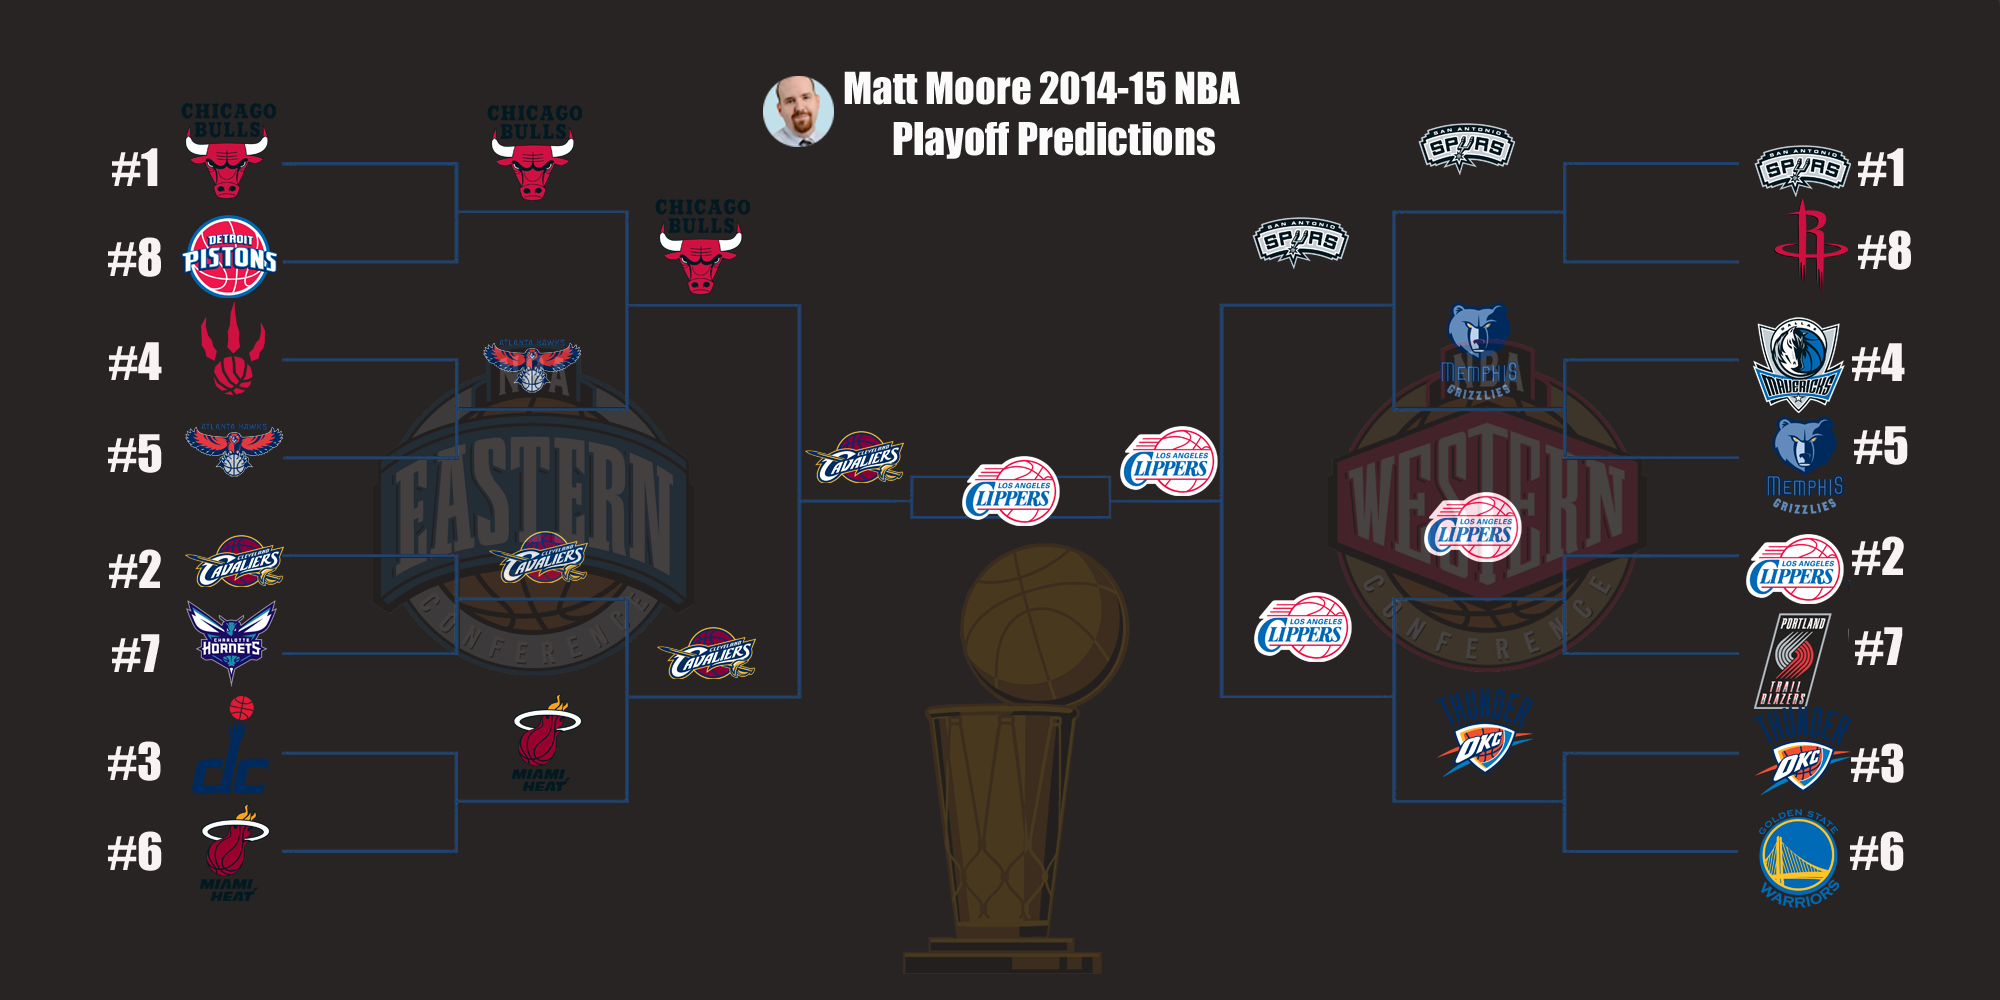 201415 nba expert predictions cbssportscom